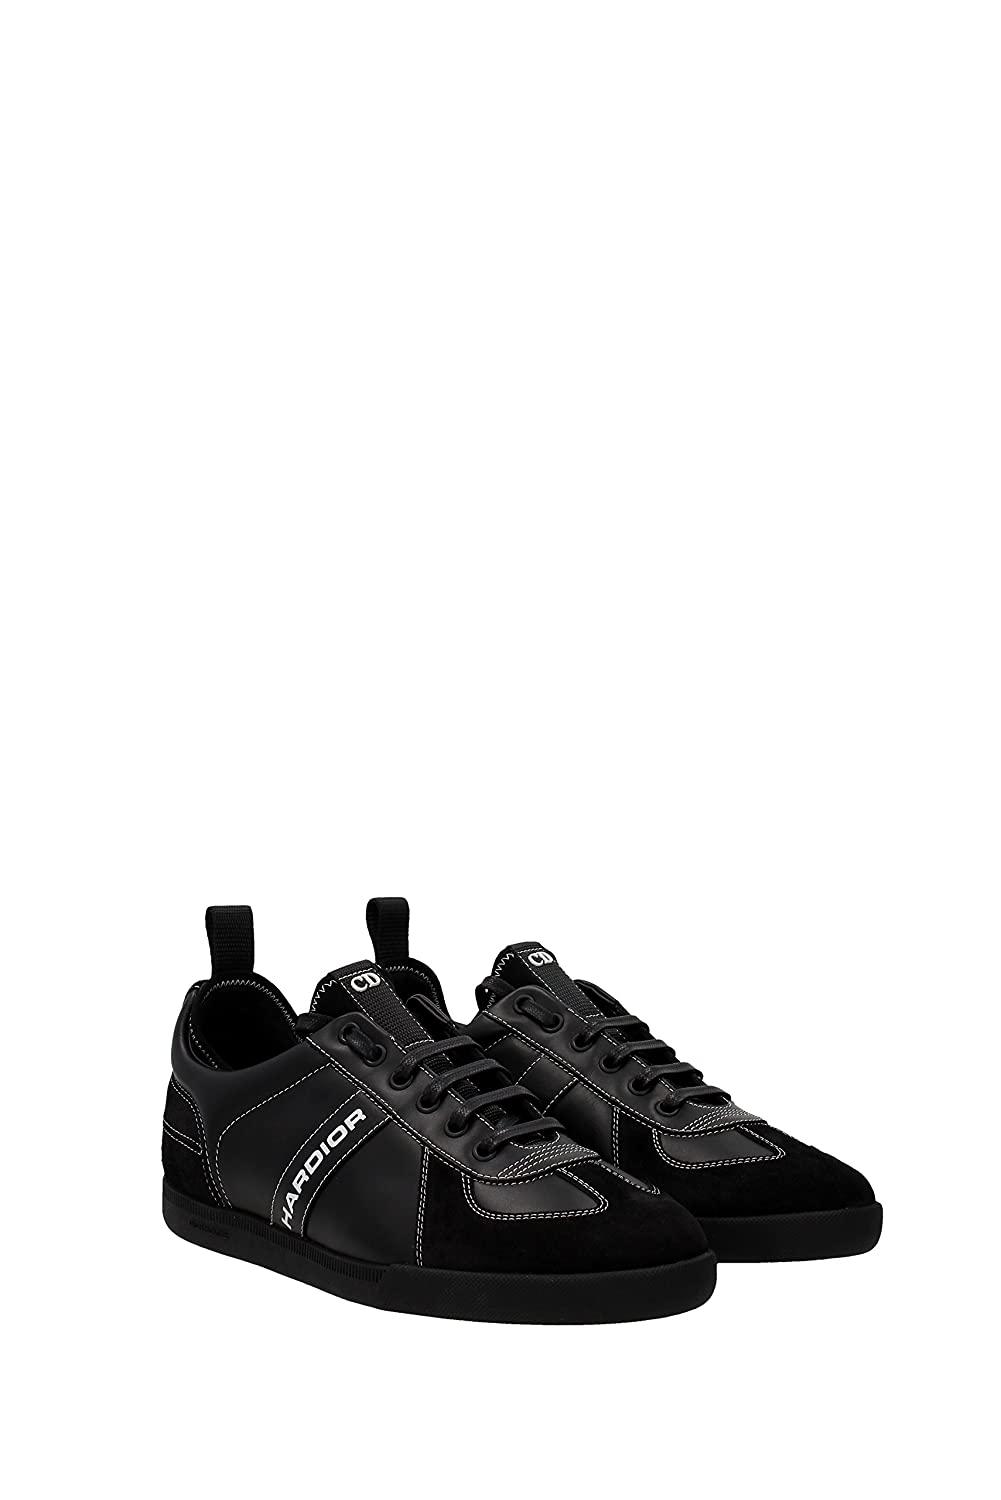 fde340a41bf8 Christian Dior Sneakers Men - Leather (3SN218XWR) UK  Amazon.co.uk  Shoes    Bags